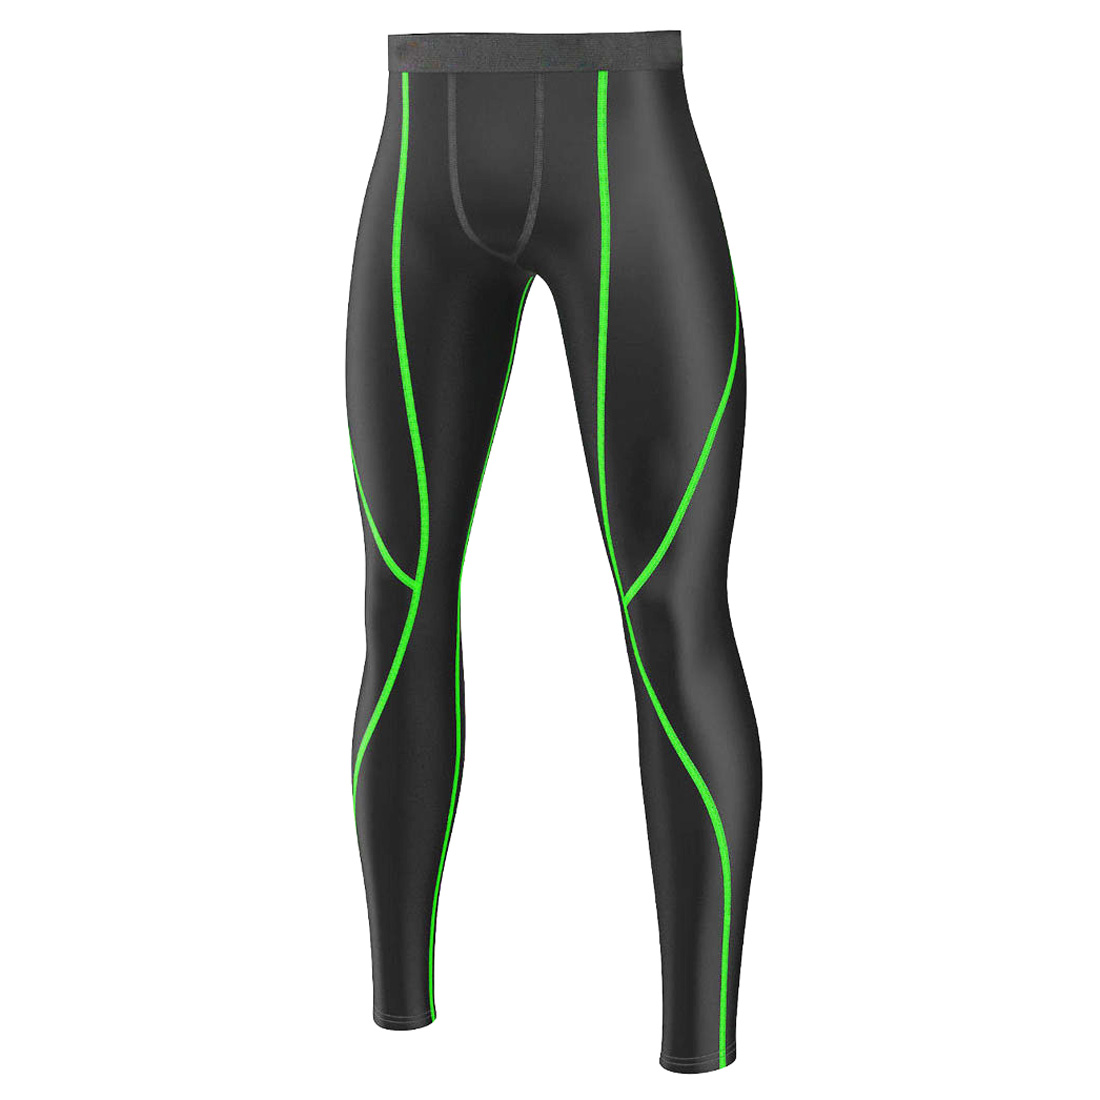 Shop the largest selection of Running Shop at the web s most popular swim makeshop-mdrcky9h.ga Returns· Free Shipping Orders $49+· 24/7 Customer Support· Low Price GuaranteeBrands: Asics, Nike, Under Armour, Body Glove, Quest Bars.